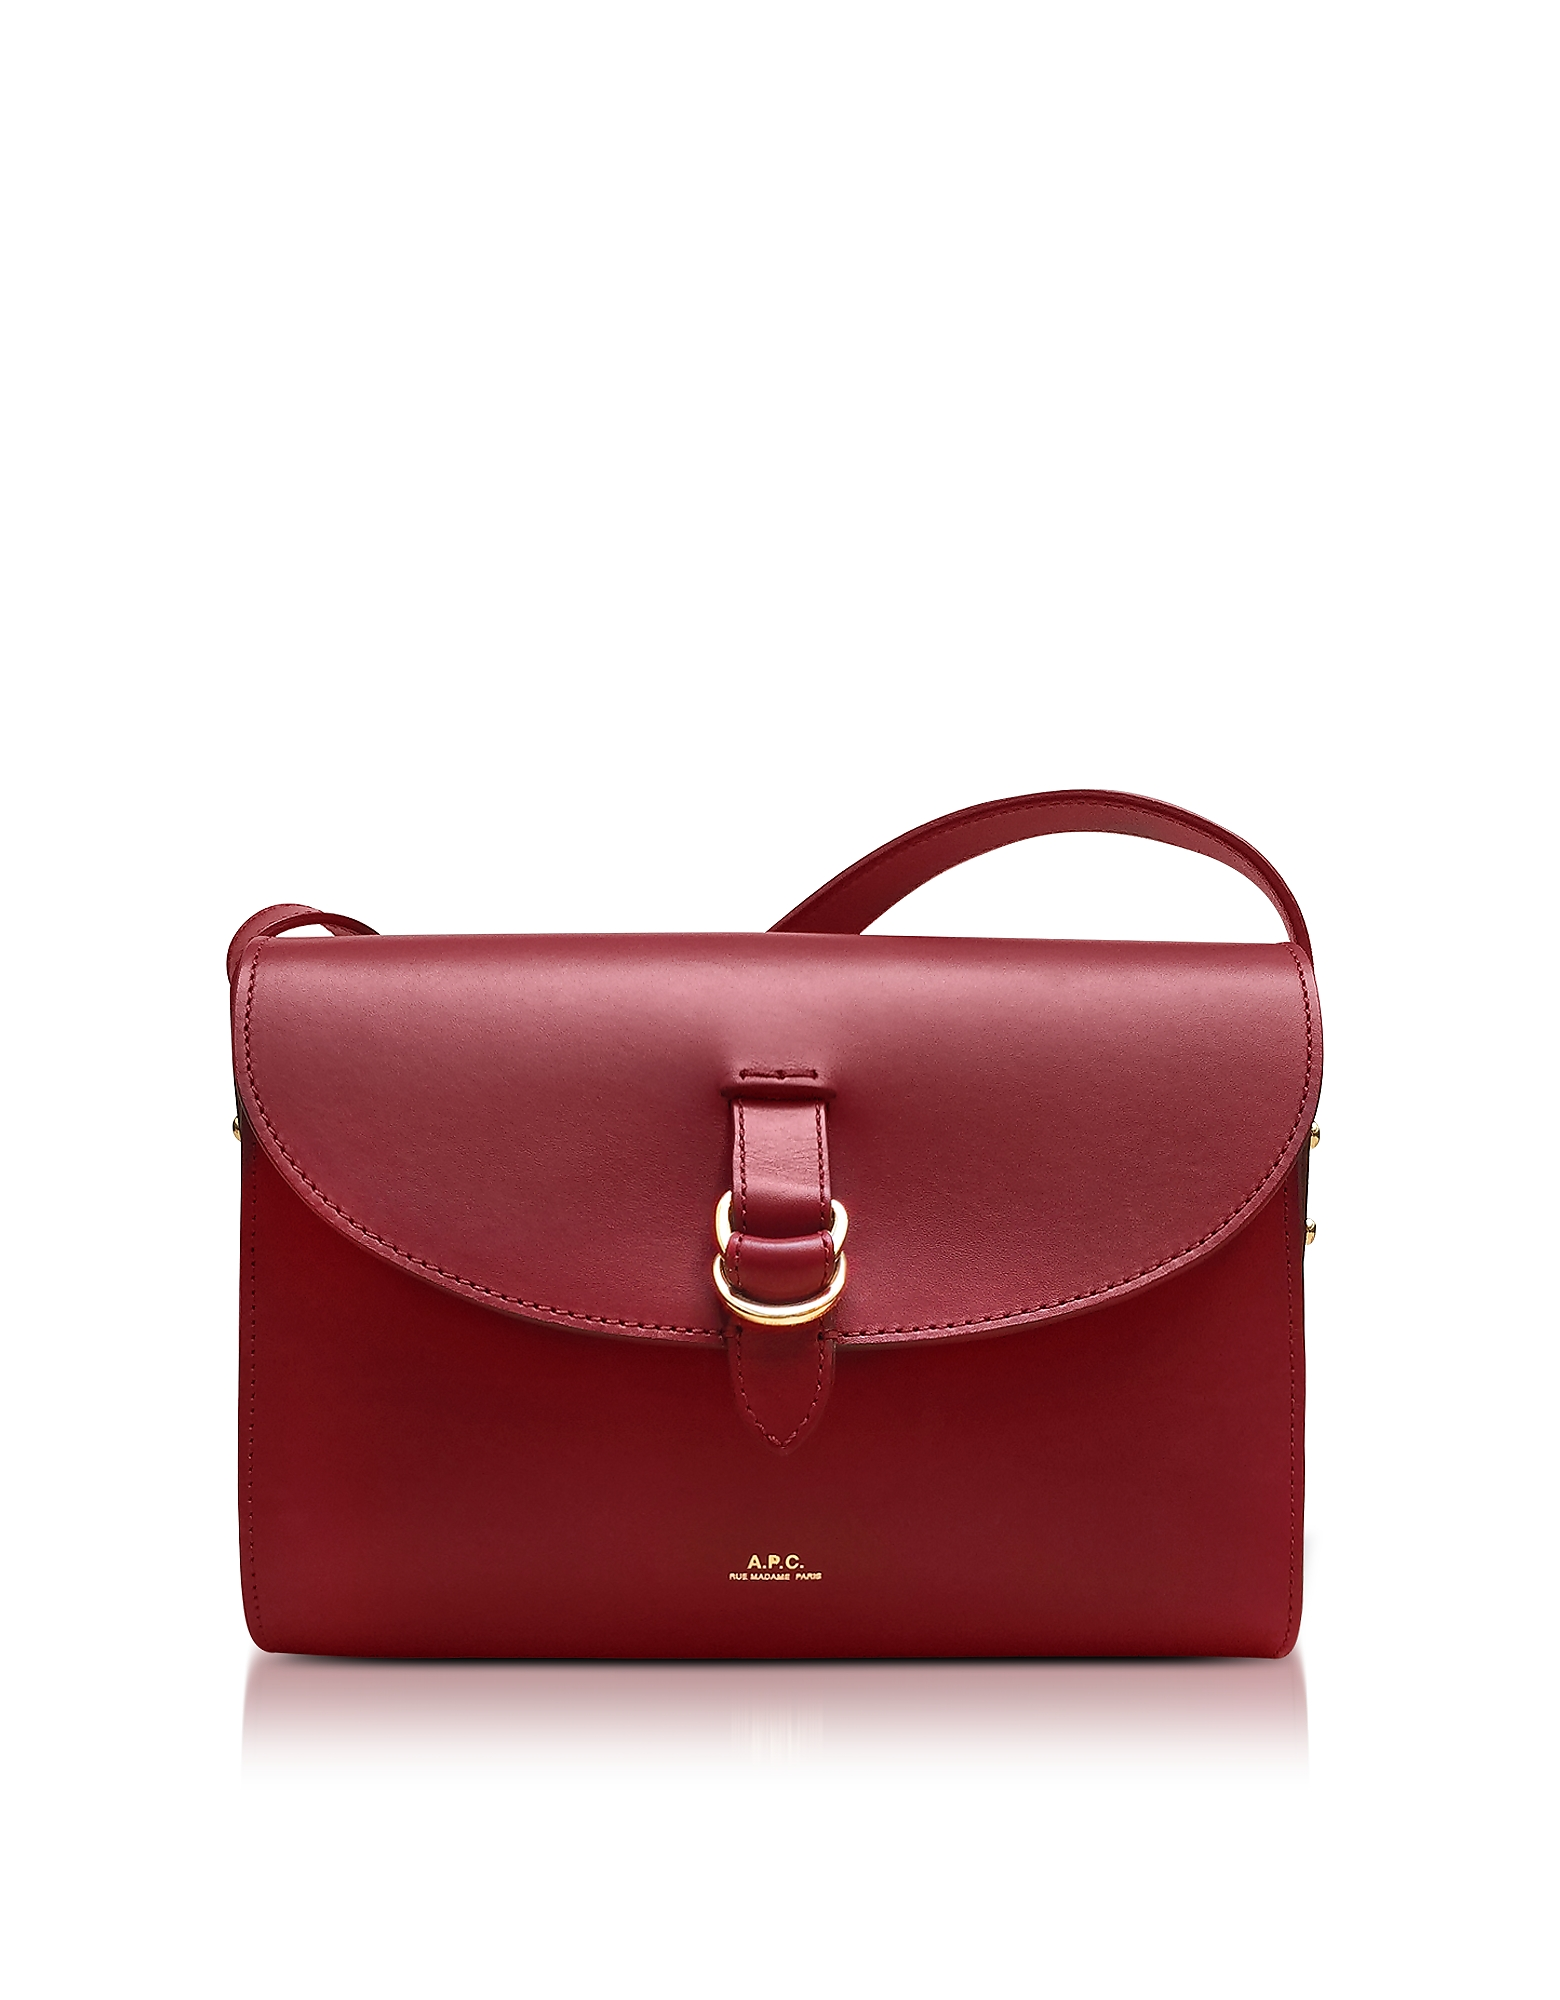 A.P.C. Handbags, Red Leather Alicia Shoulder Bag